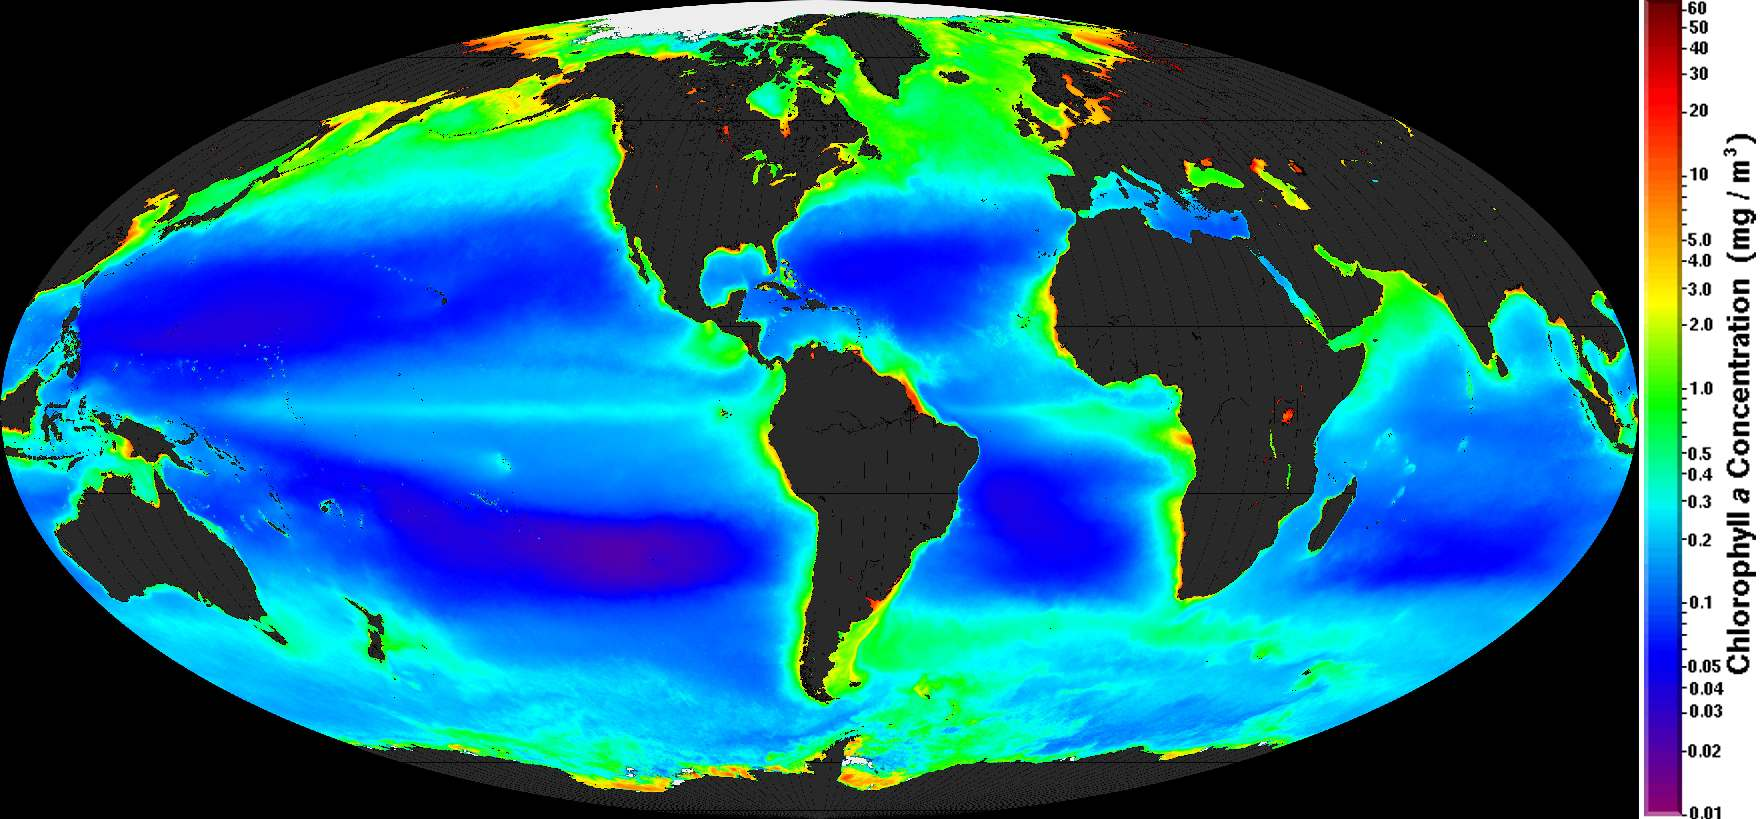 SATELLITE BASED OCEAN PLASTIC IDENTIFICATION SYSTEM